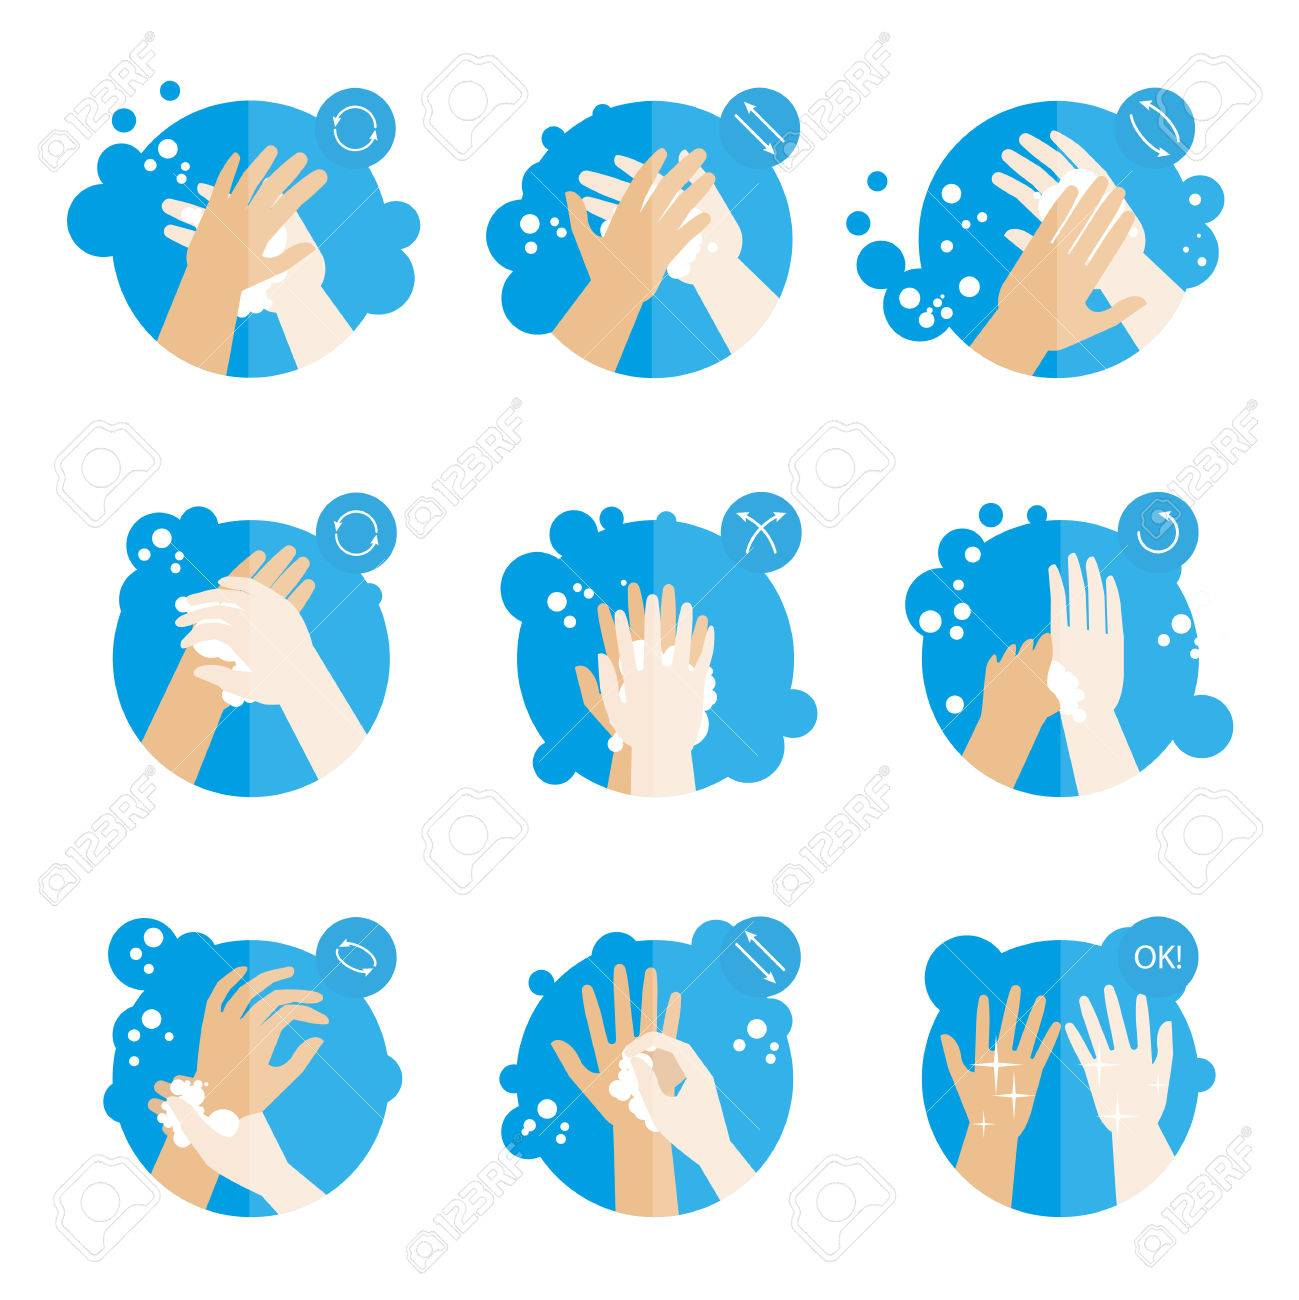 Washing hands properly - medical instructions for health. Clean hygiene procedure with soap. Set of fat icons. Isolated vector illustrations - 64471003